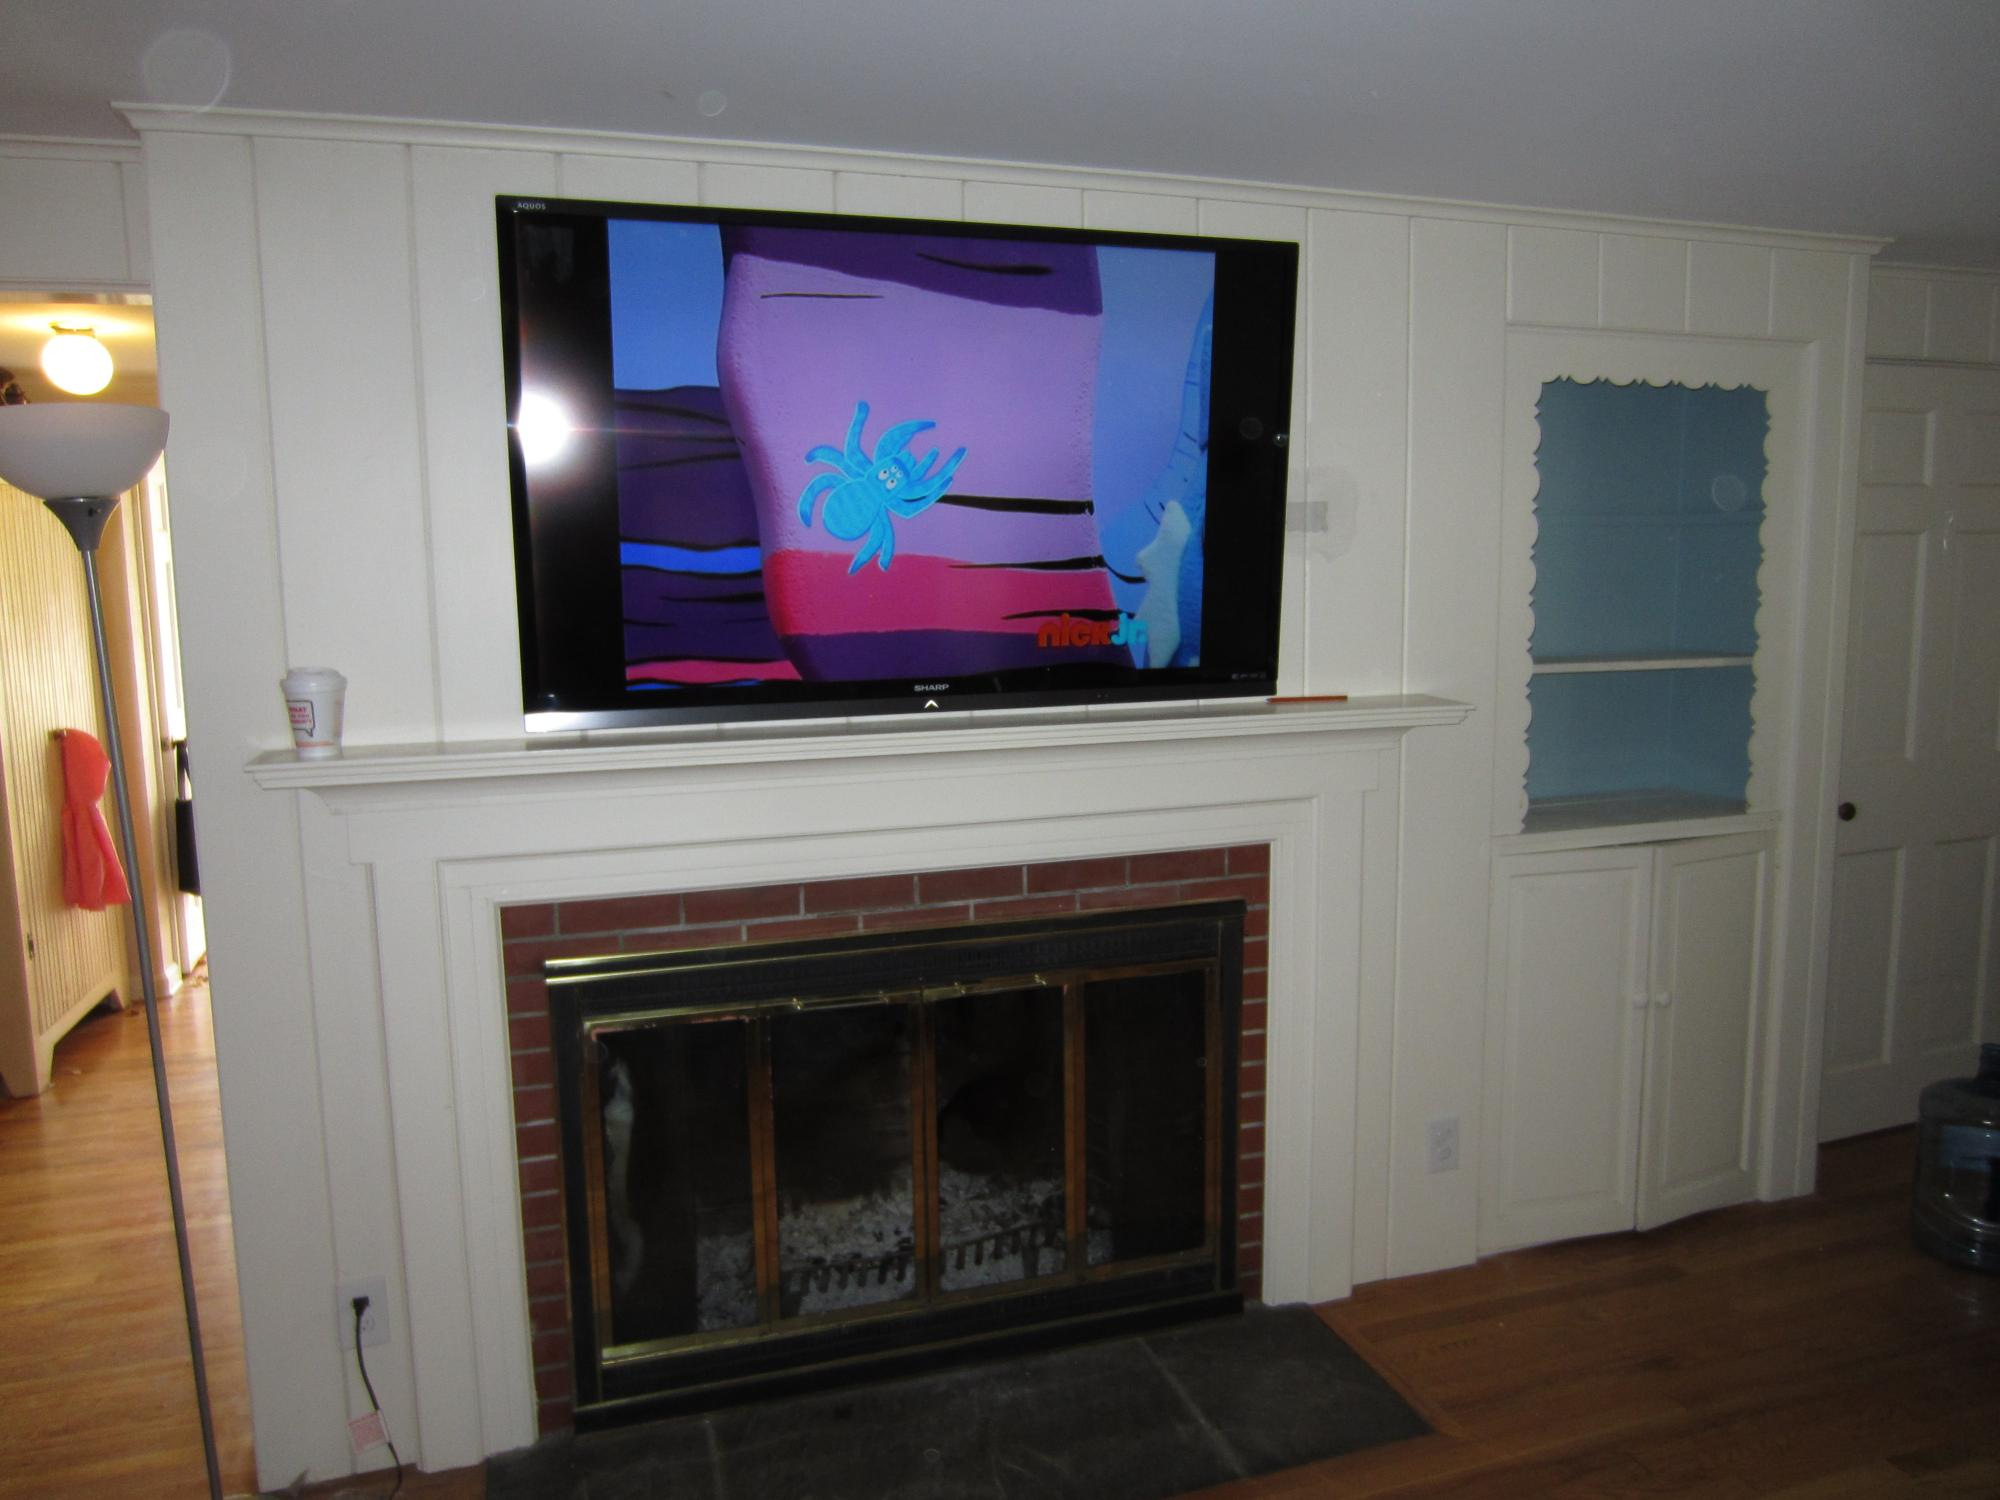 simple-tv-mount-for-fireplace-with-breathtaking-wall-mount-tv-over-fireplace-ideas-best-inspiration-of-tv-mount-for-fireplace.jpg